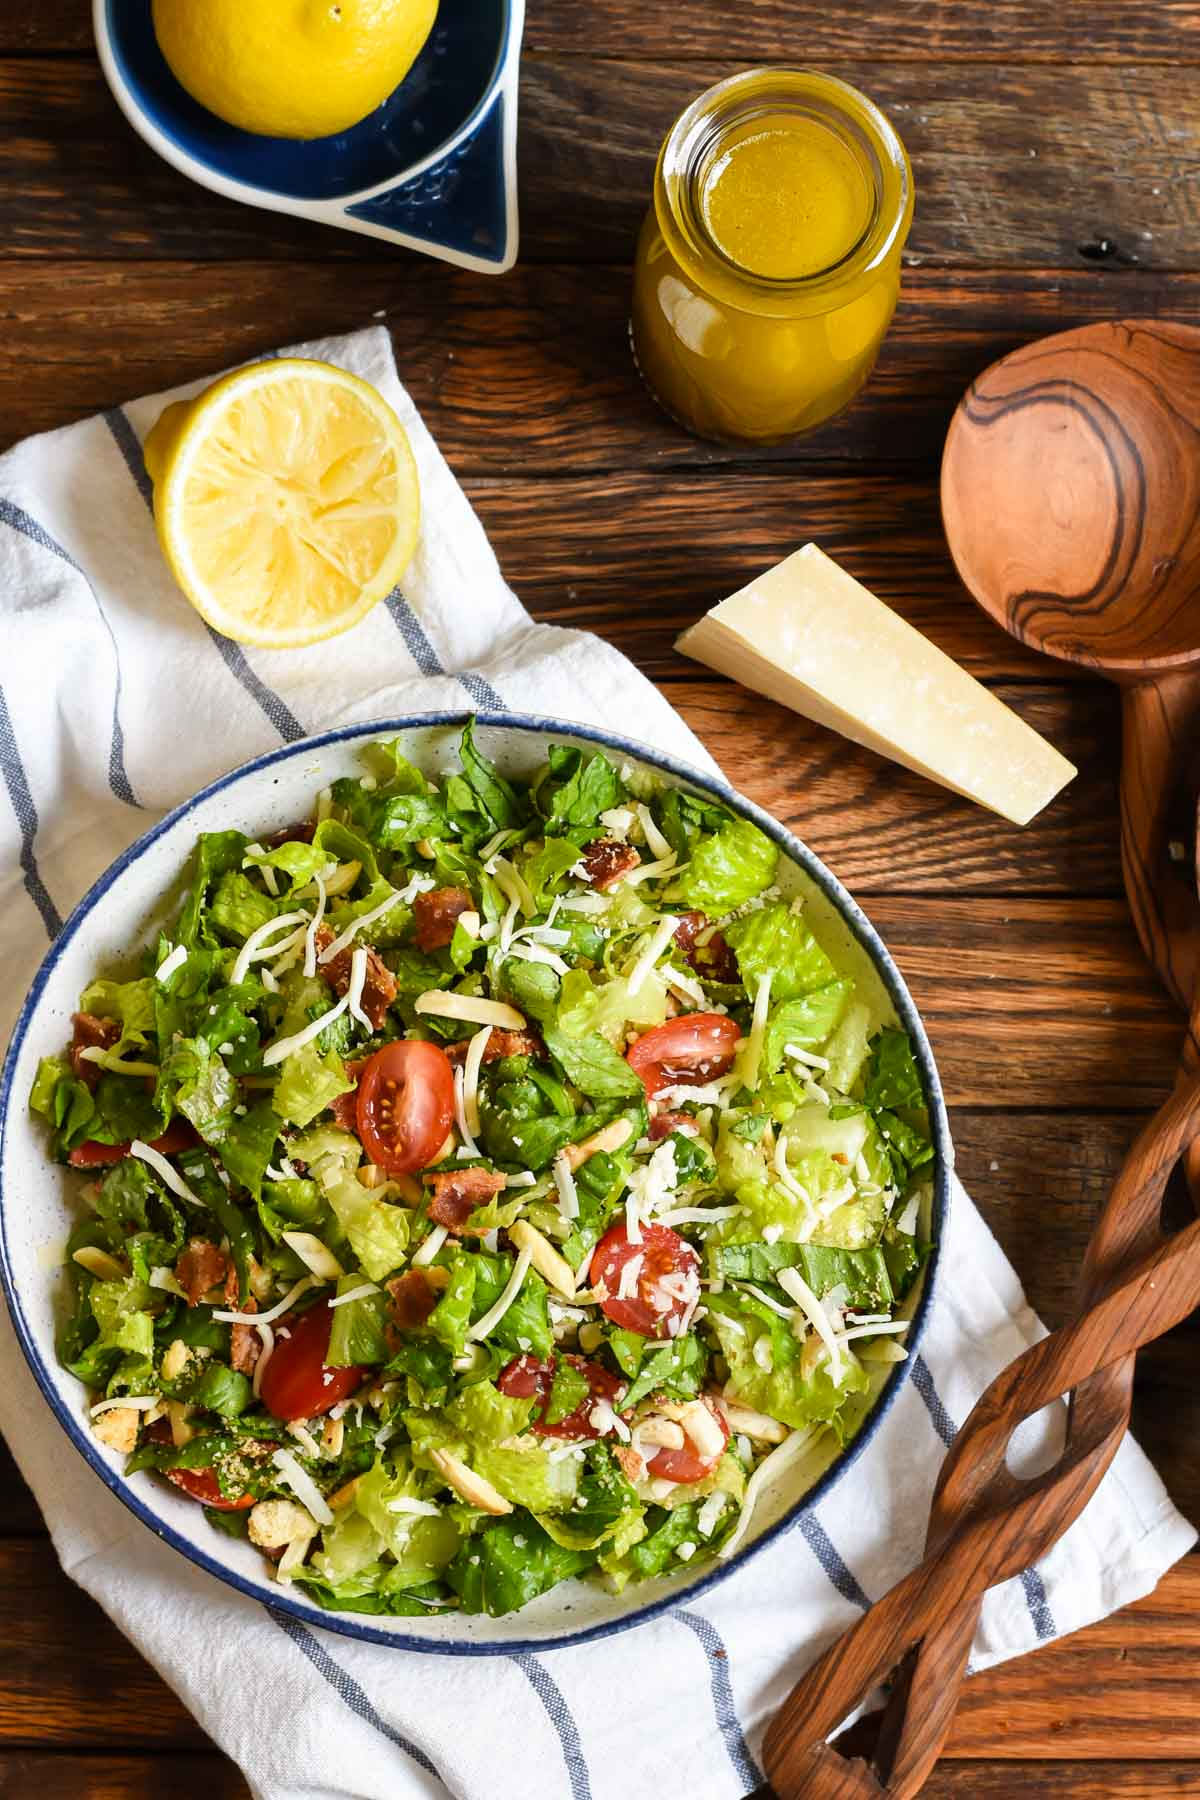 Known only as That GOOD Salad, this bowl has everything you need--crisp lettuce, tomatoes, crispy bacon, two cheeses, and croutons tossed in a simple lemon garlic dressing.